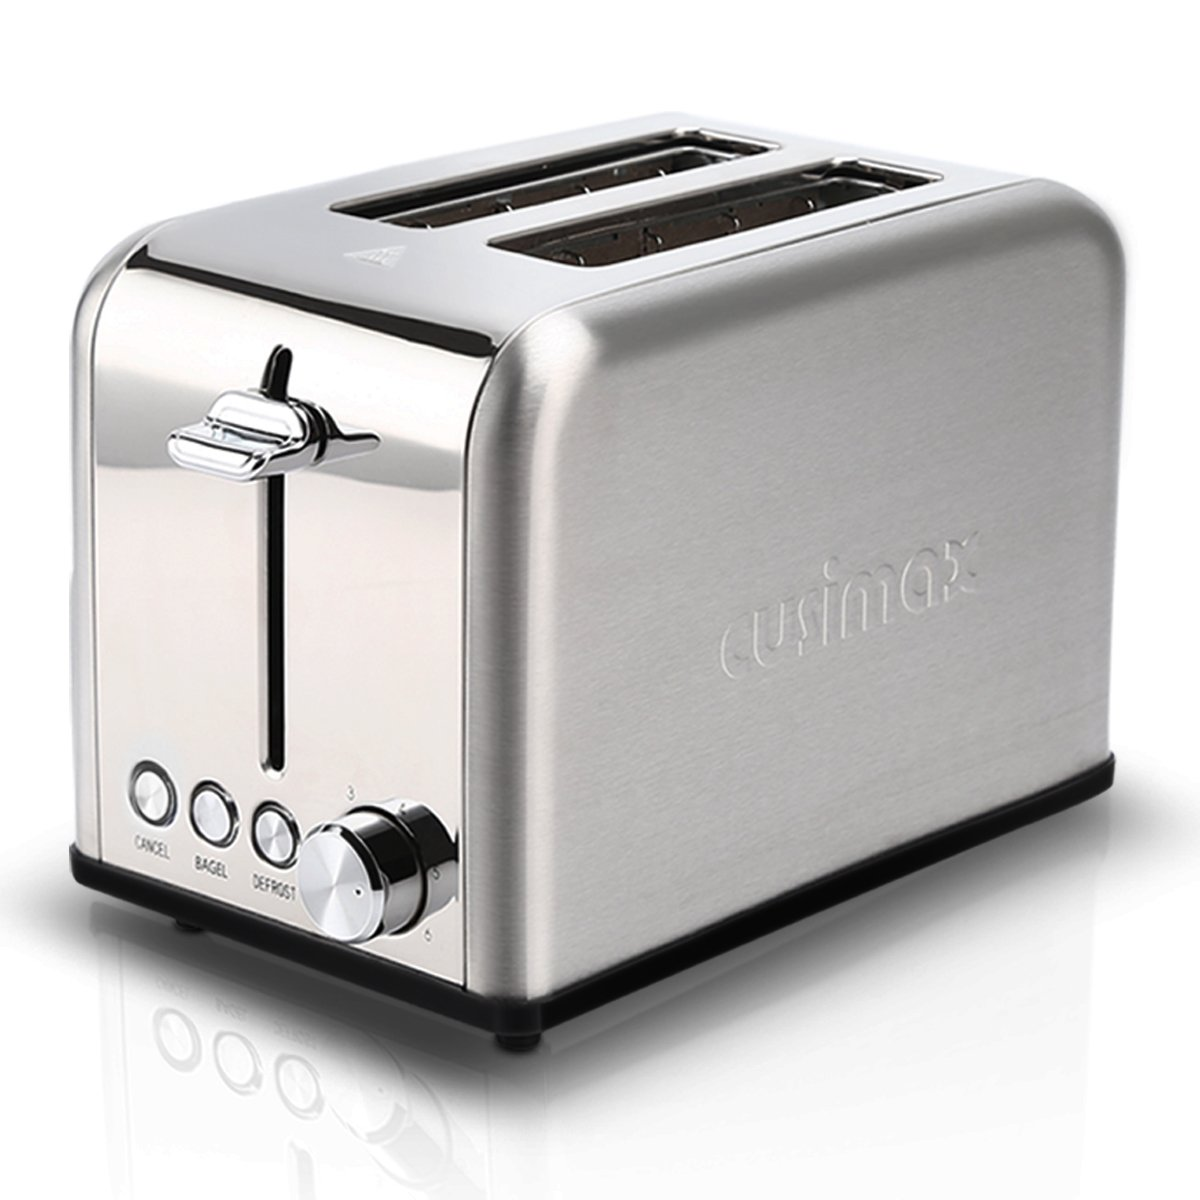 Cusimax 2-Slice Toaster 6 Shade Settings with Cancel/Bagel/Defrost Function - Extra Wide Slot and High Lift Lever - 825W - CMST-80S - Stainless Steel